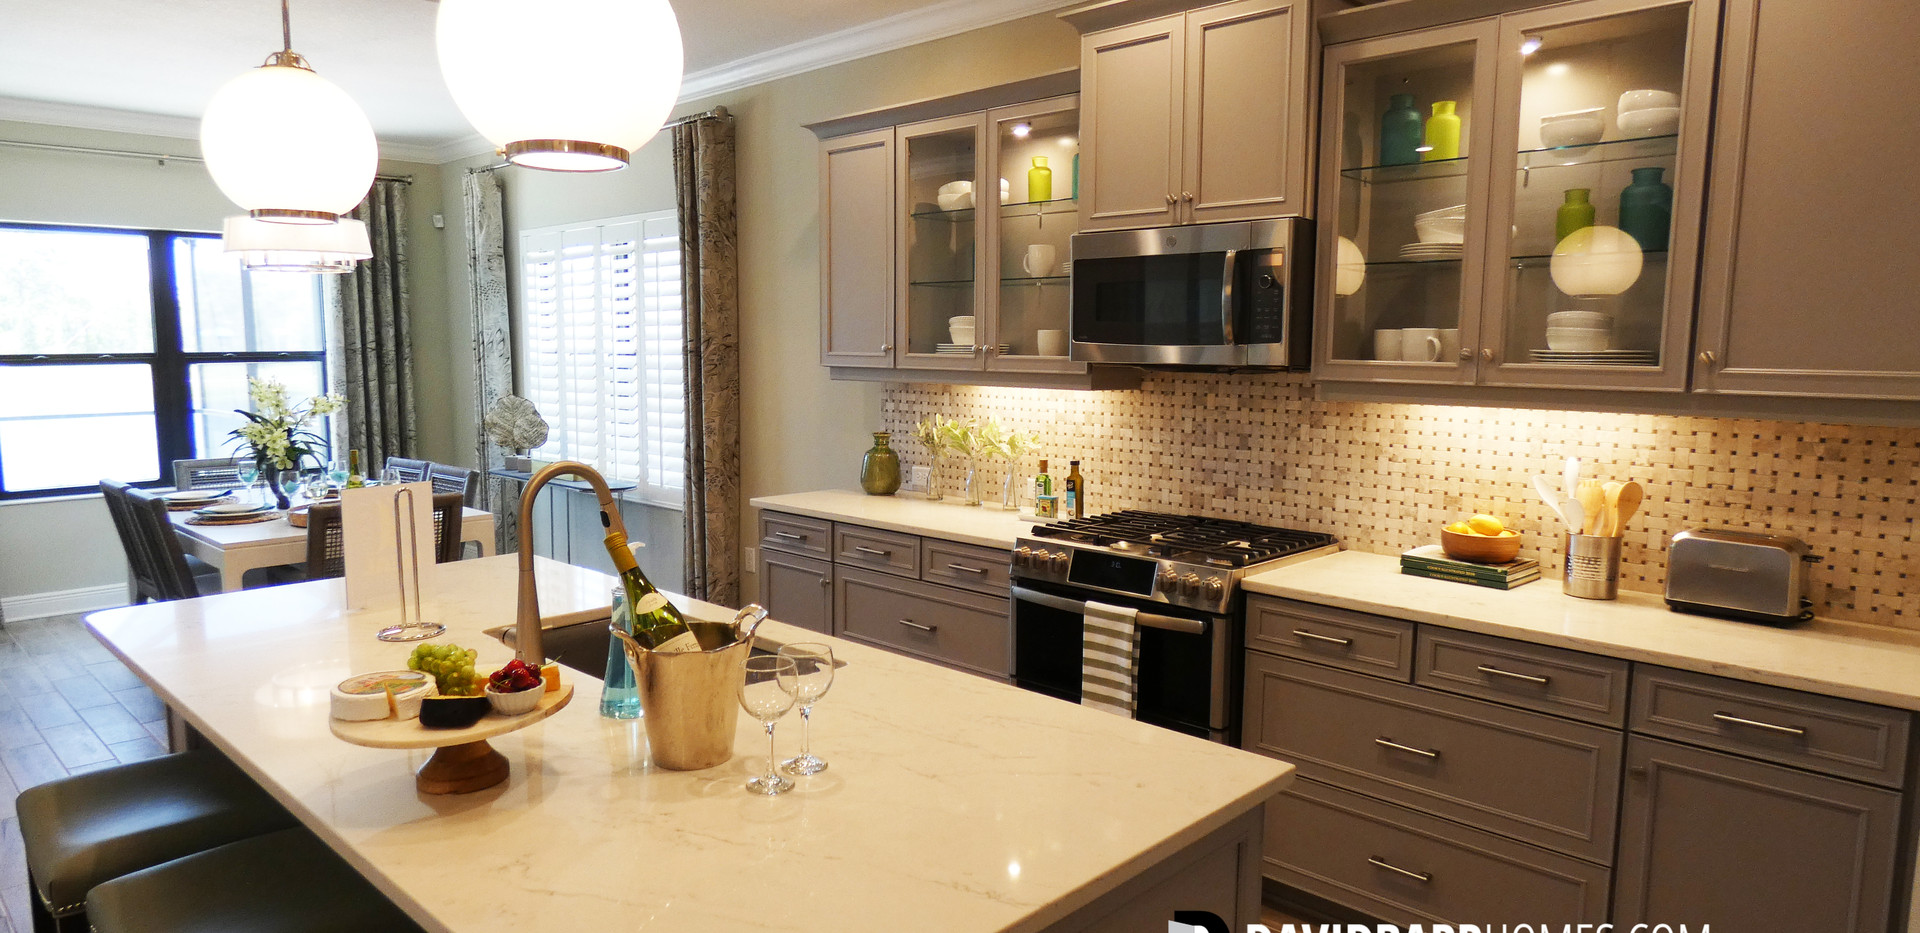 Vicenza Starlight model home kitchen